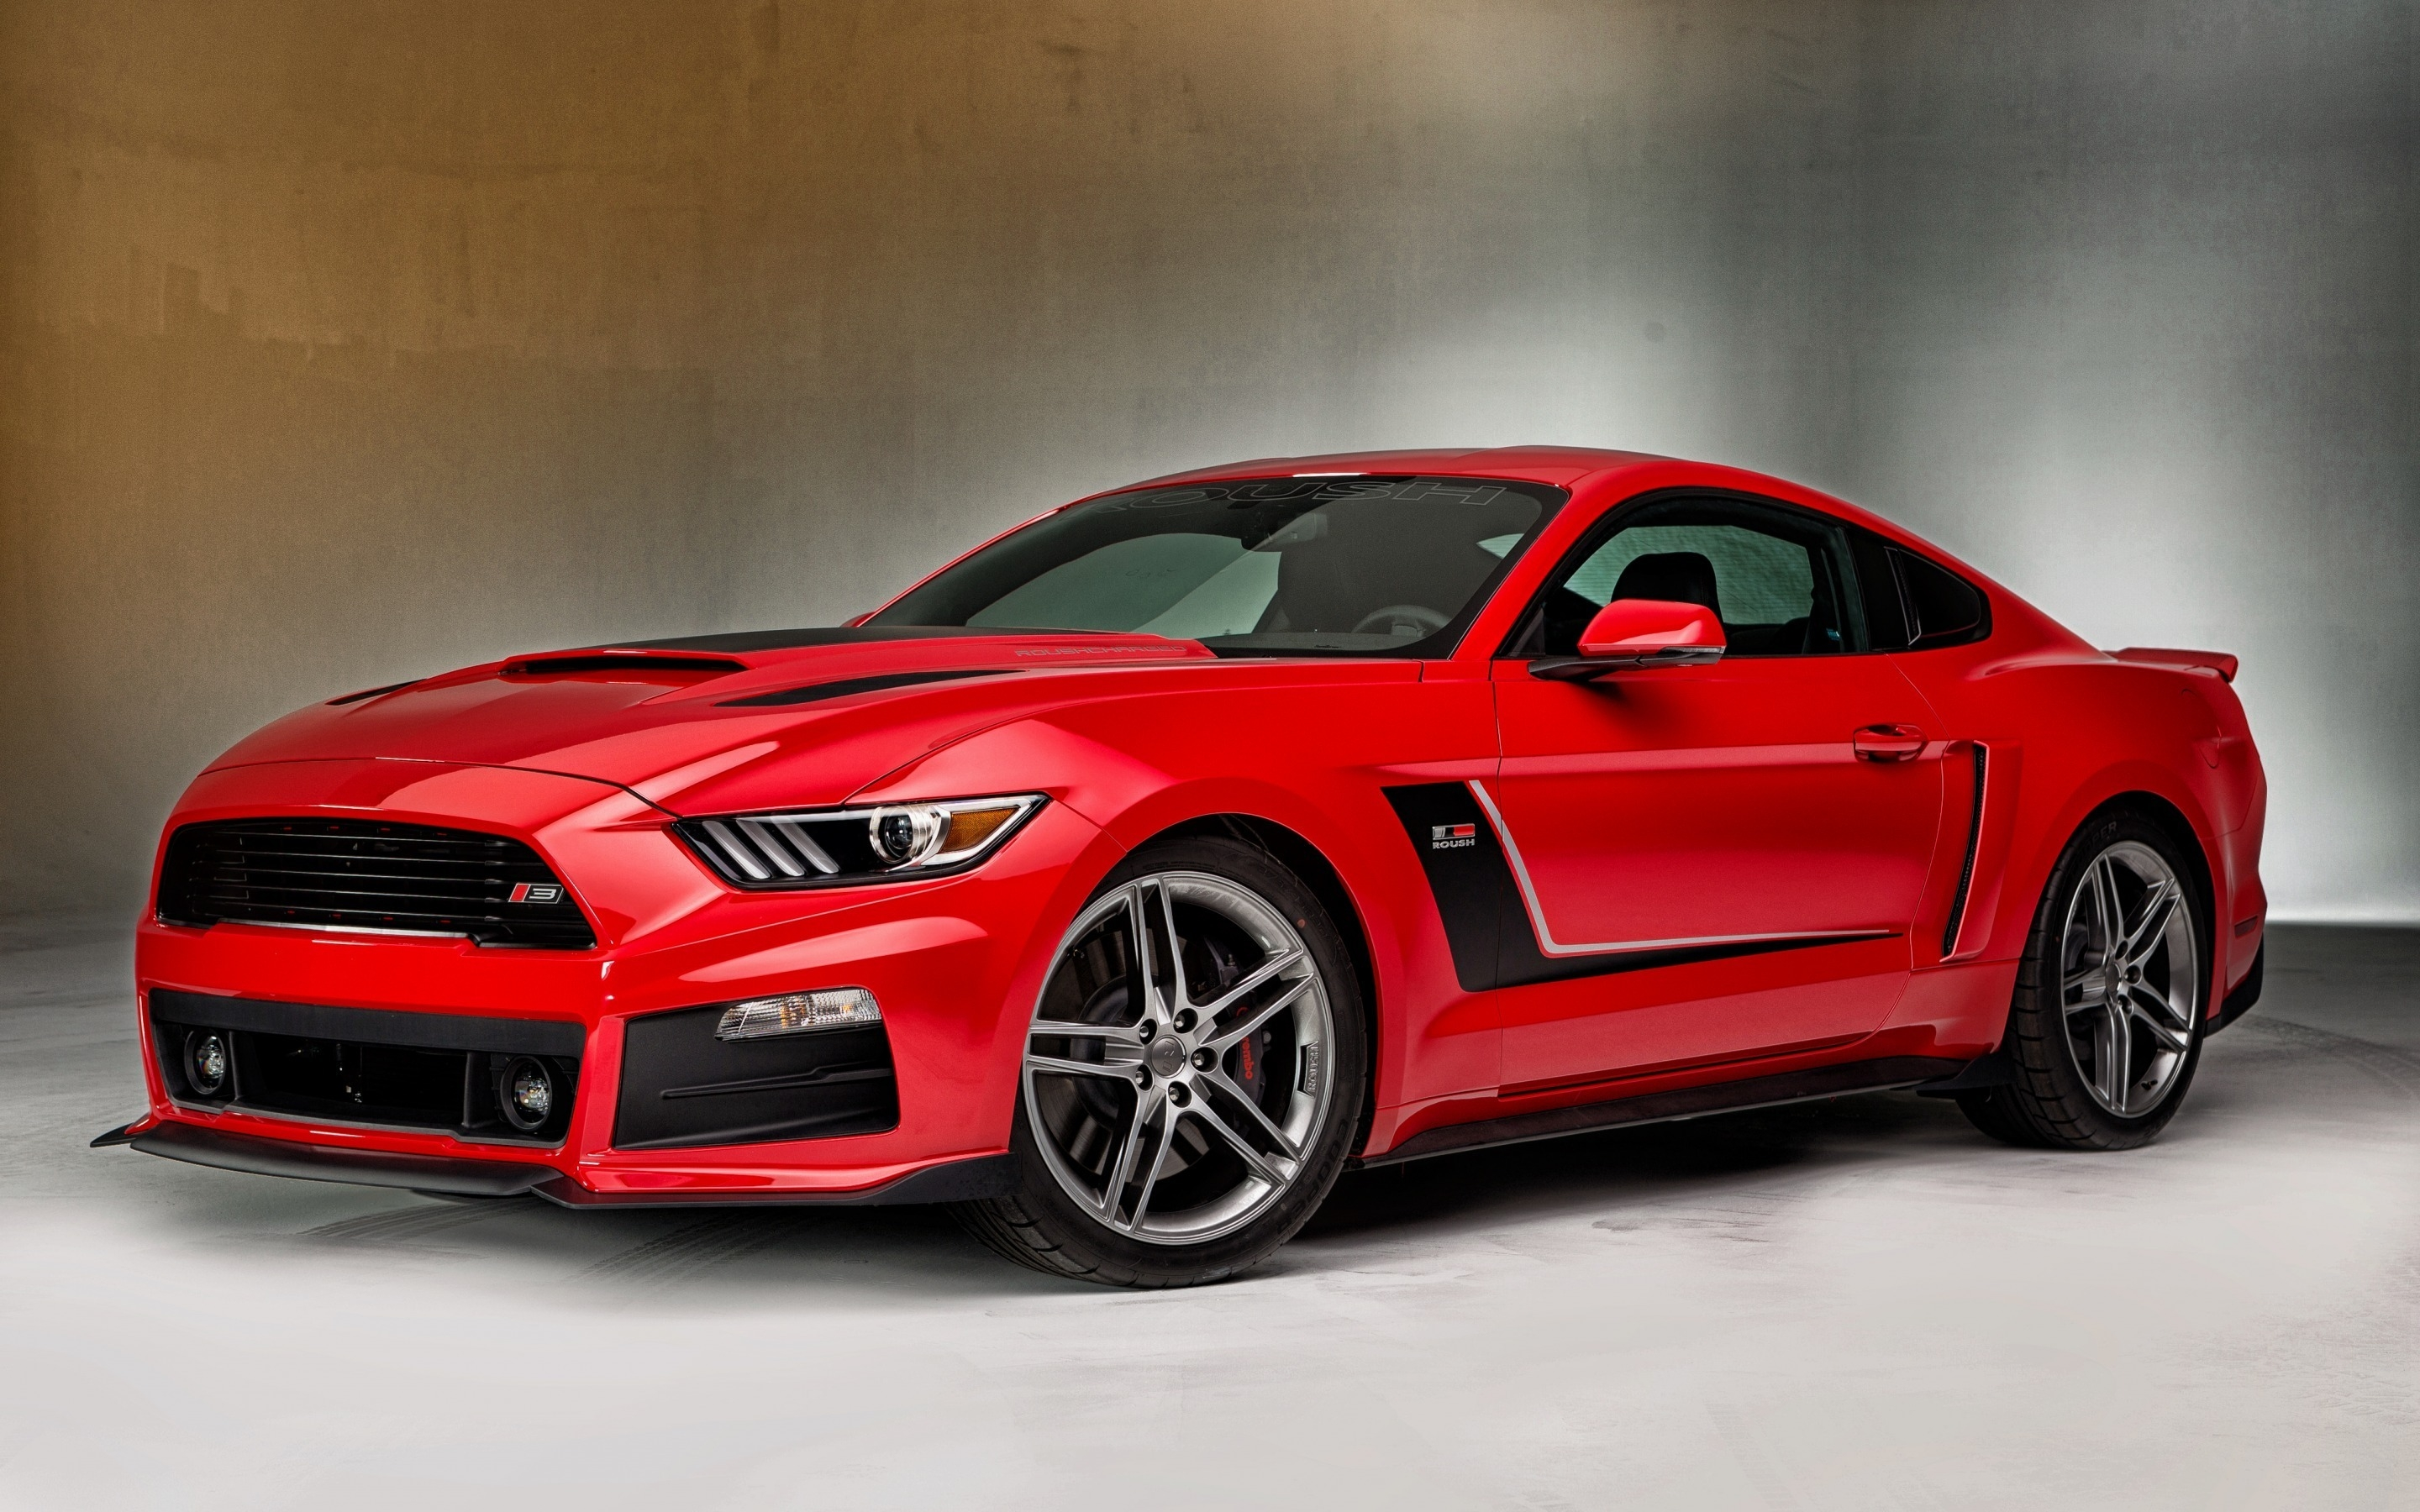 Gourgeous Red Ford Mustang 2880 X 1800 Retina Display